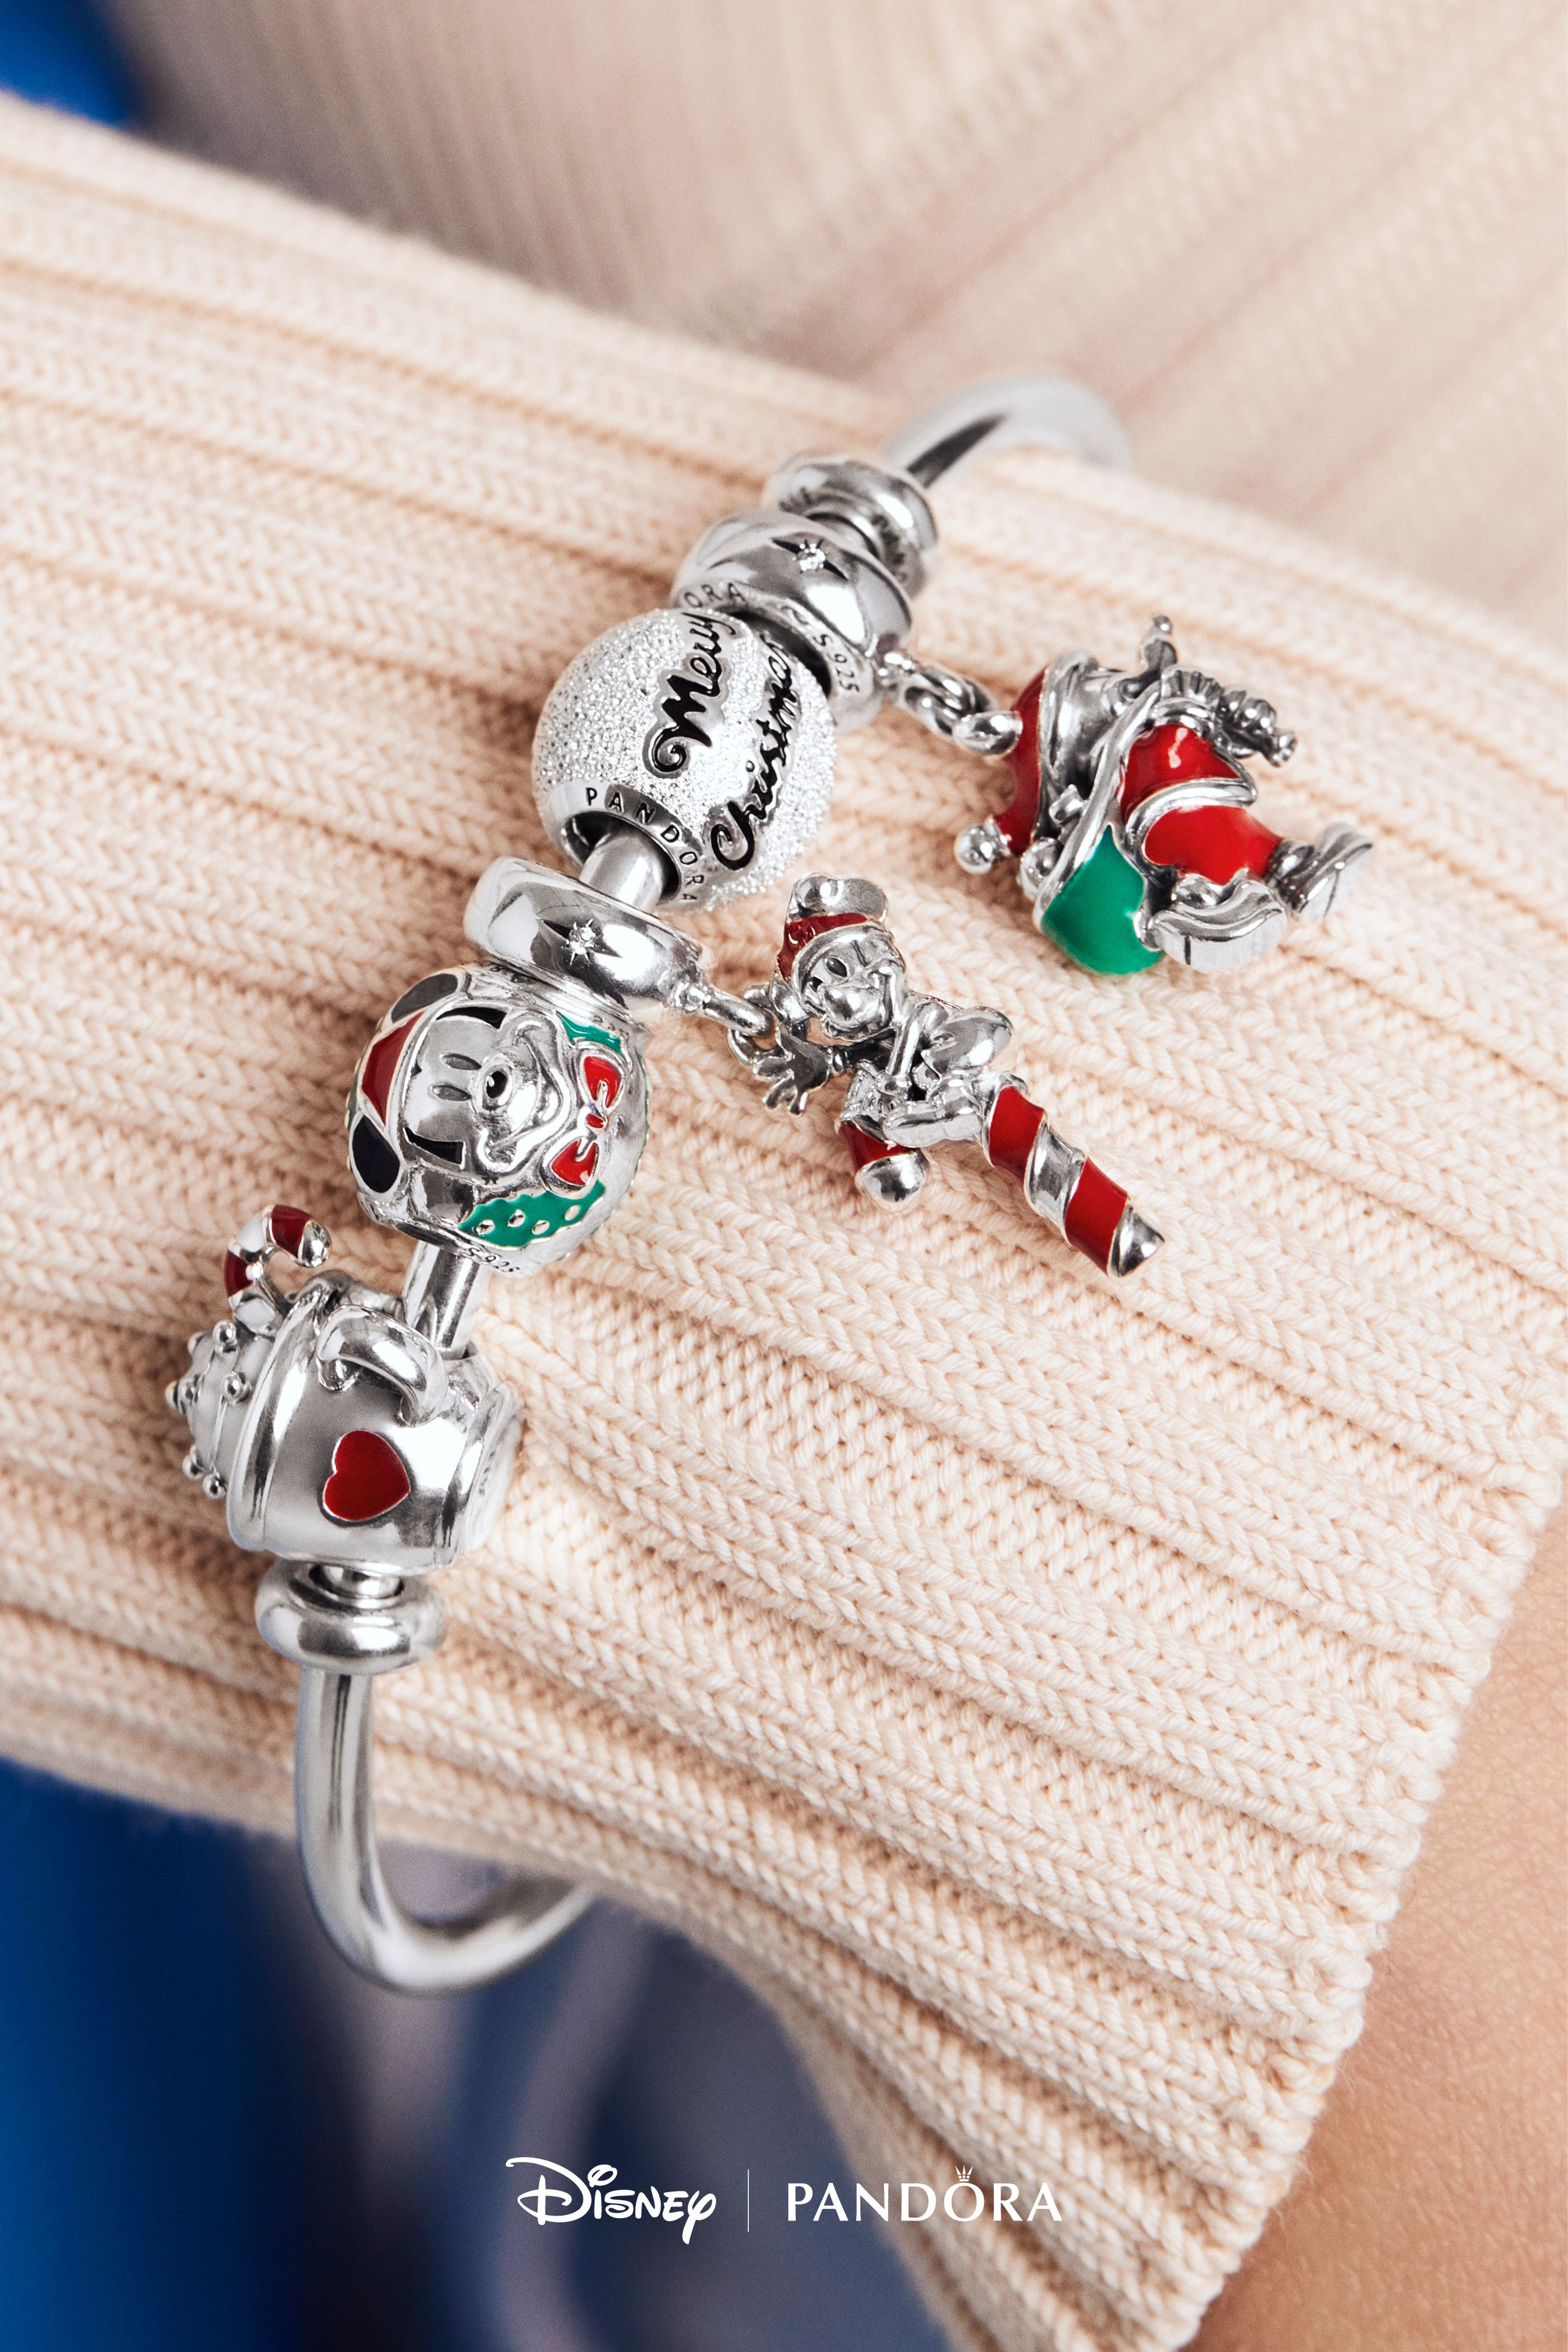 2019 Pandora Christmas Charms Let these holiday ready Disney PANDORA charms brighten up your